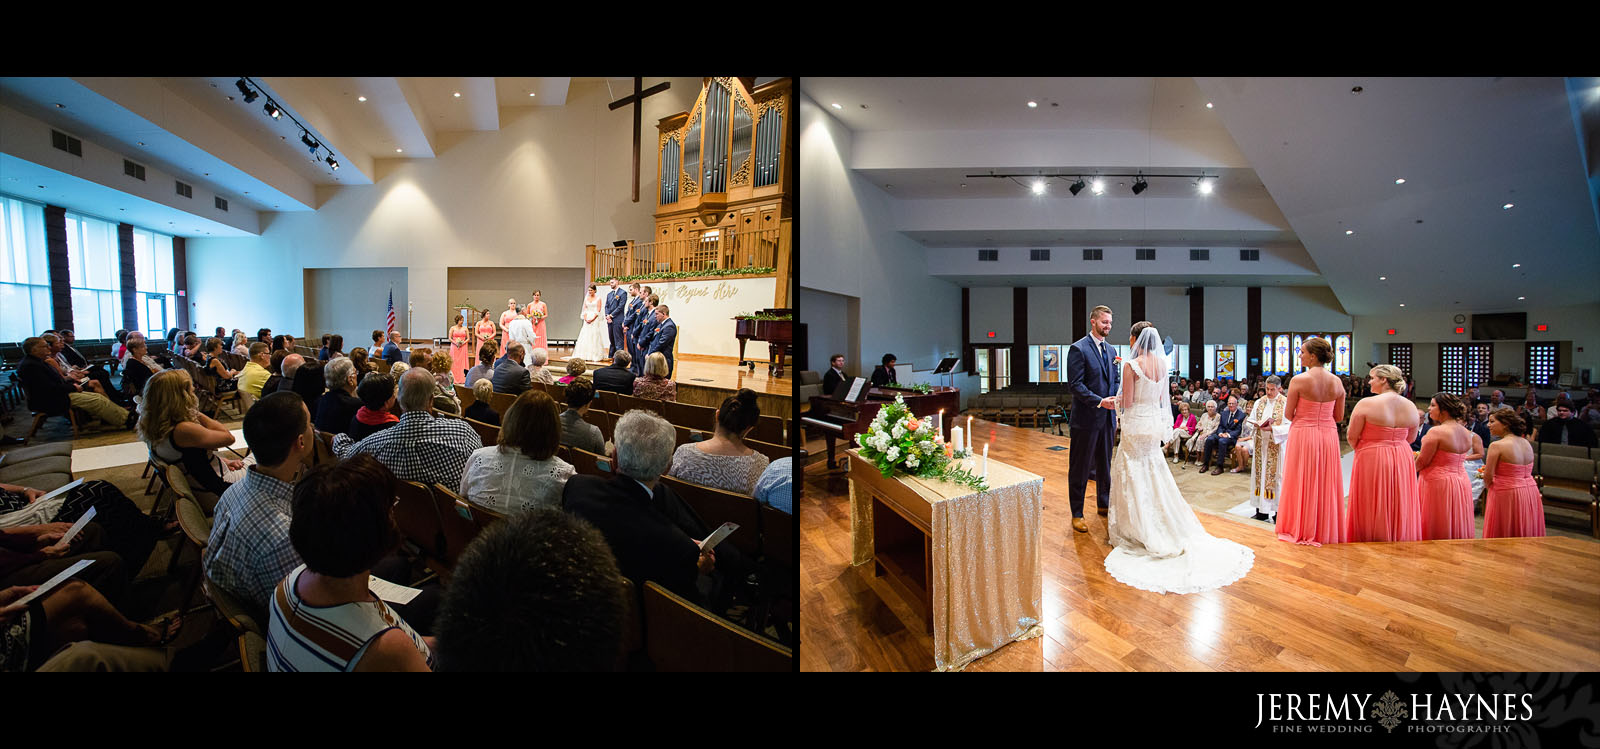 beautiful-wedding-ceremony-calvary-united-methodist-church